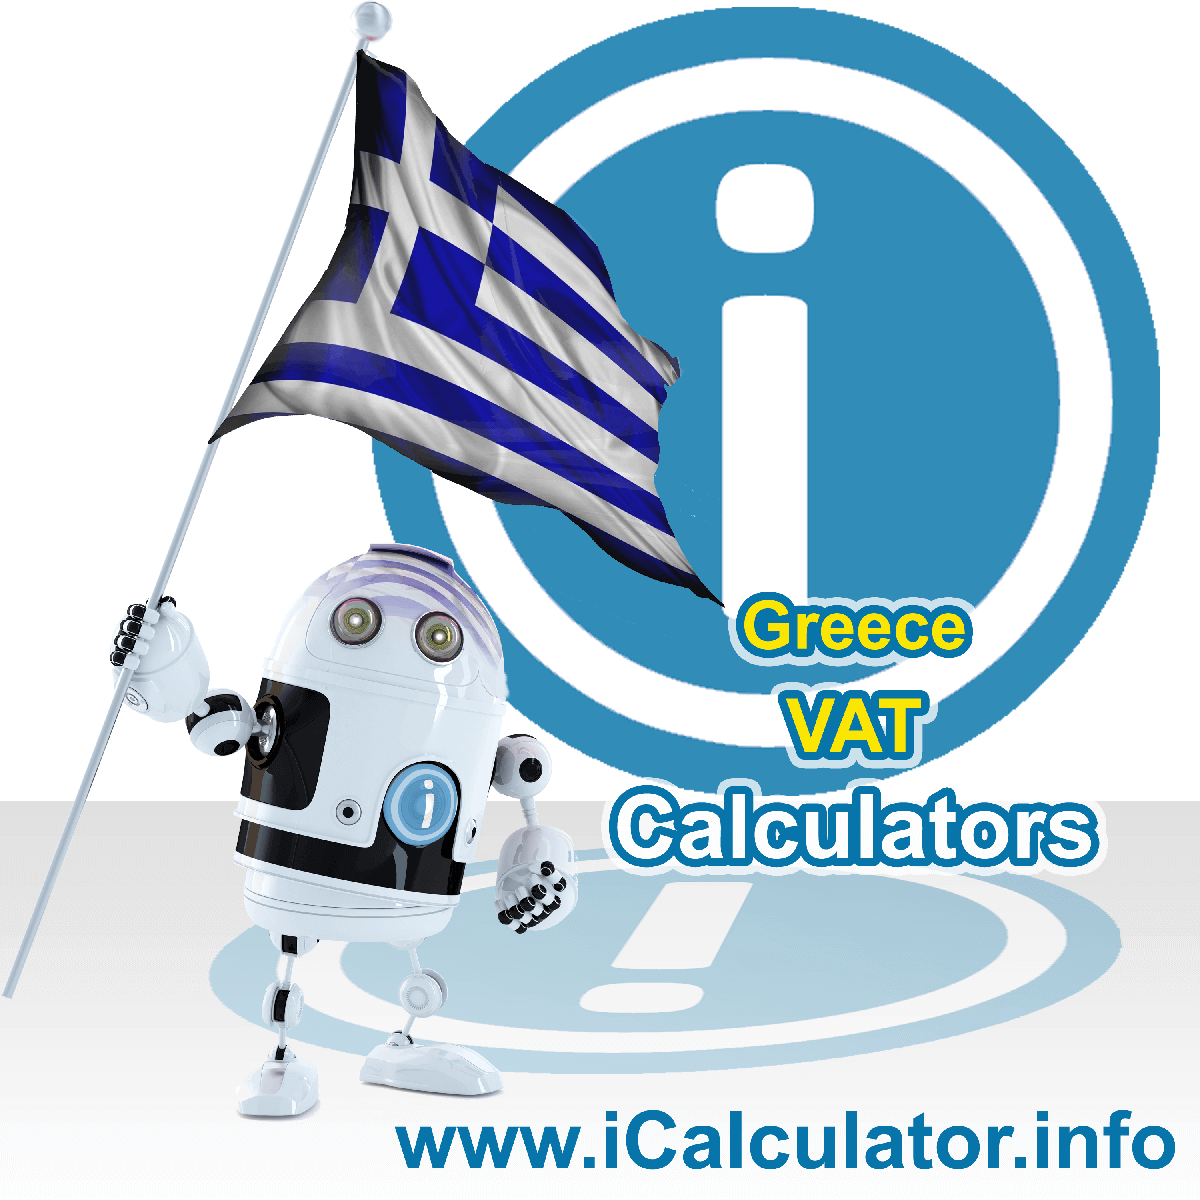 Greece VAT Calculator. This image shows the Greece flag and information relating to the VAT formula used for calculating Value Added Tax in Greece using the Greece VAT Calculator in 2021